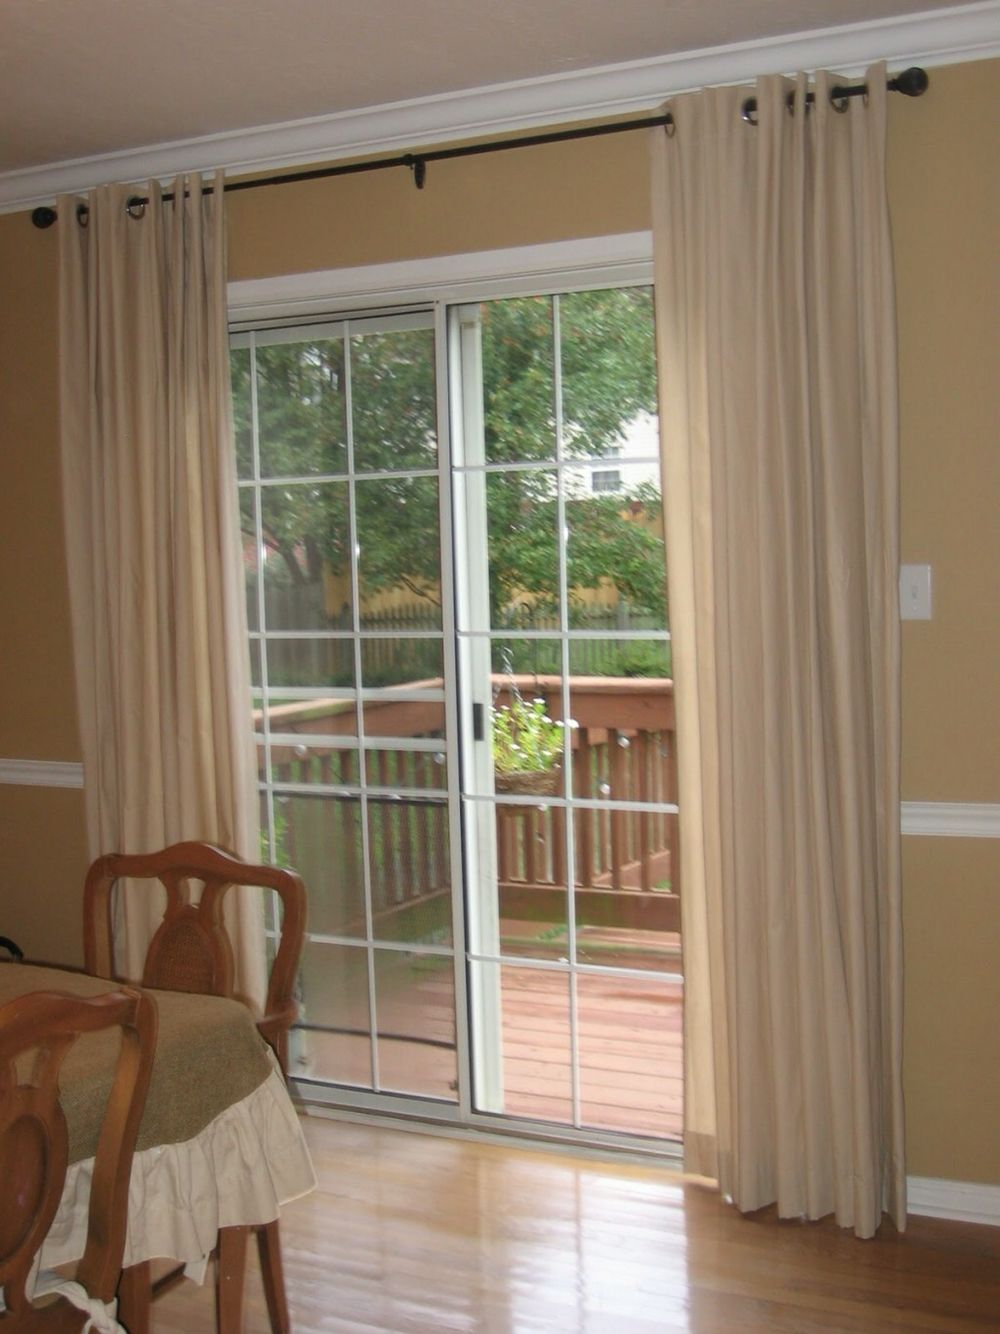 Curtains For Sliding Door Window Treatments Bedroom Door Coverings Patio Door Window Treatments